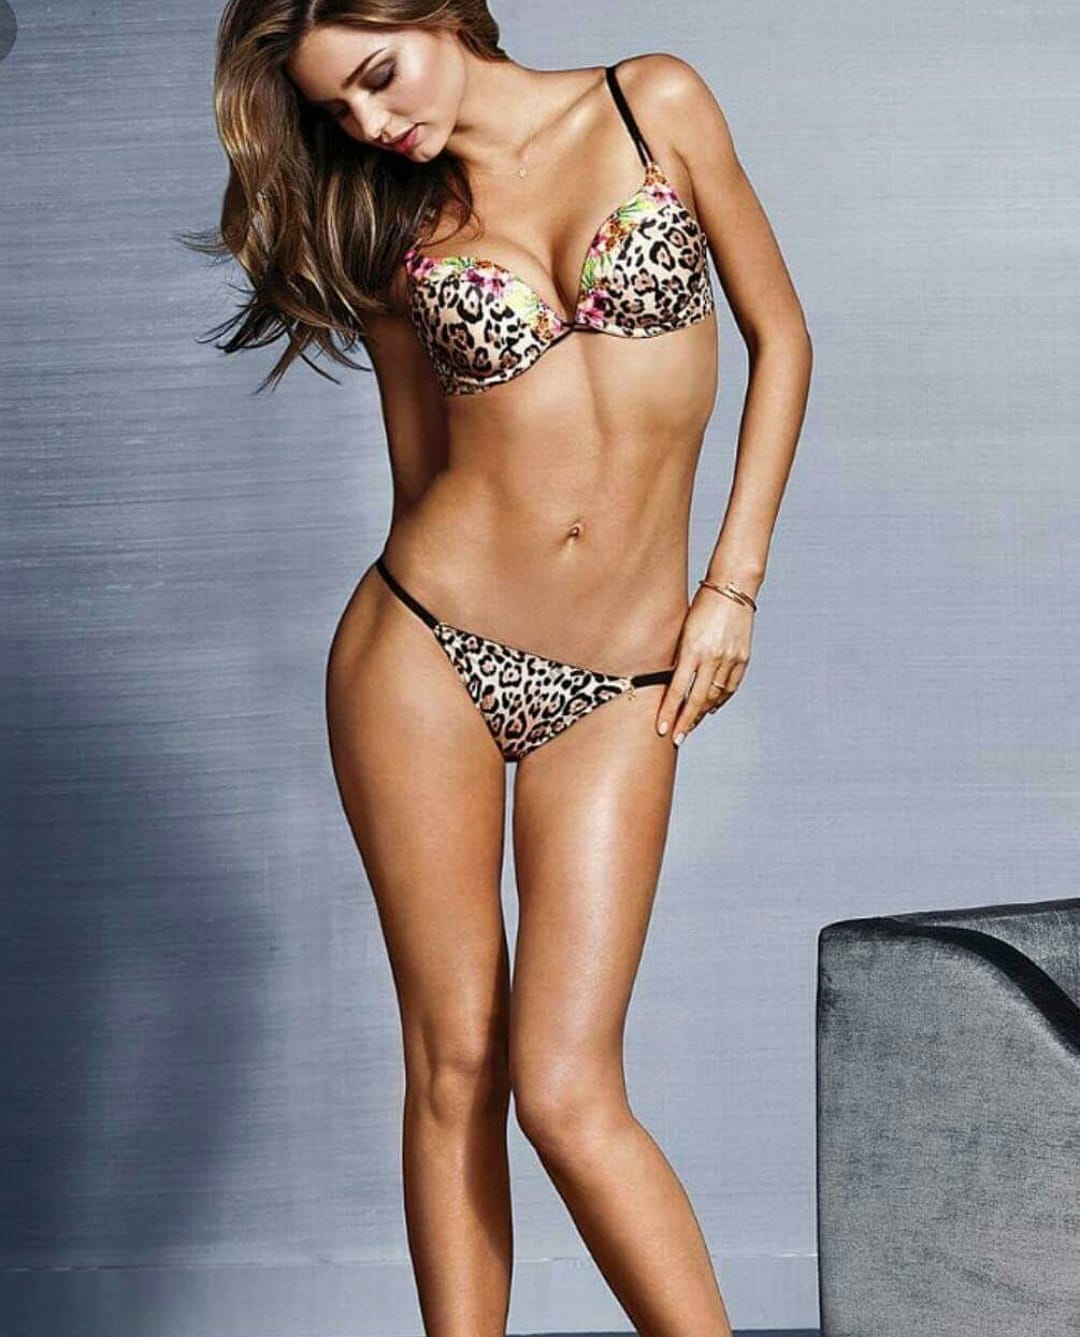 Miranda Kerr Hot Photoshoot for VS in Bikini